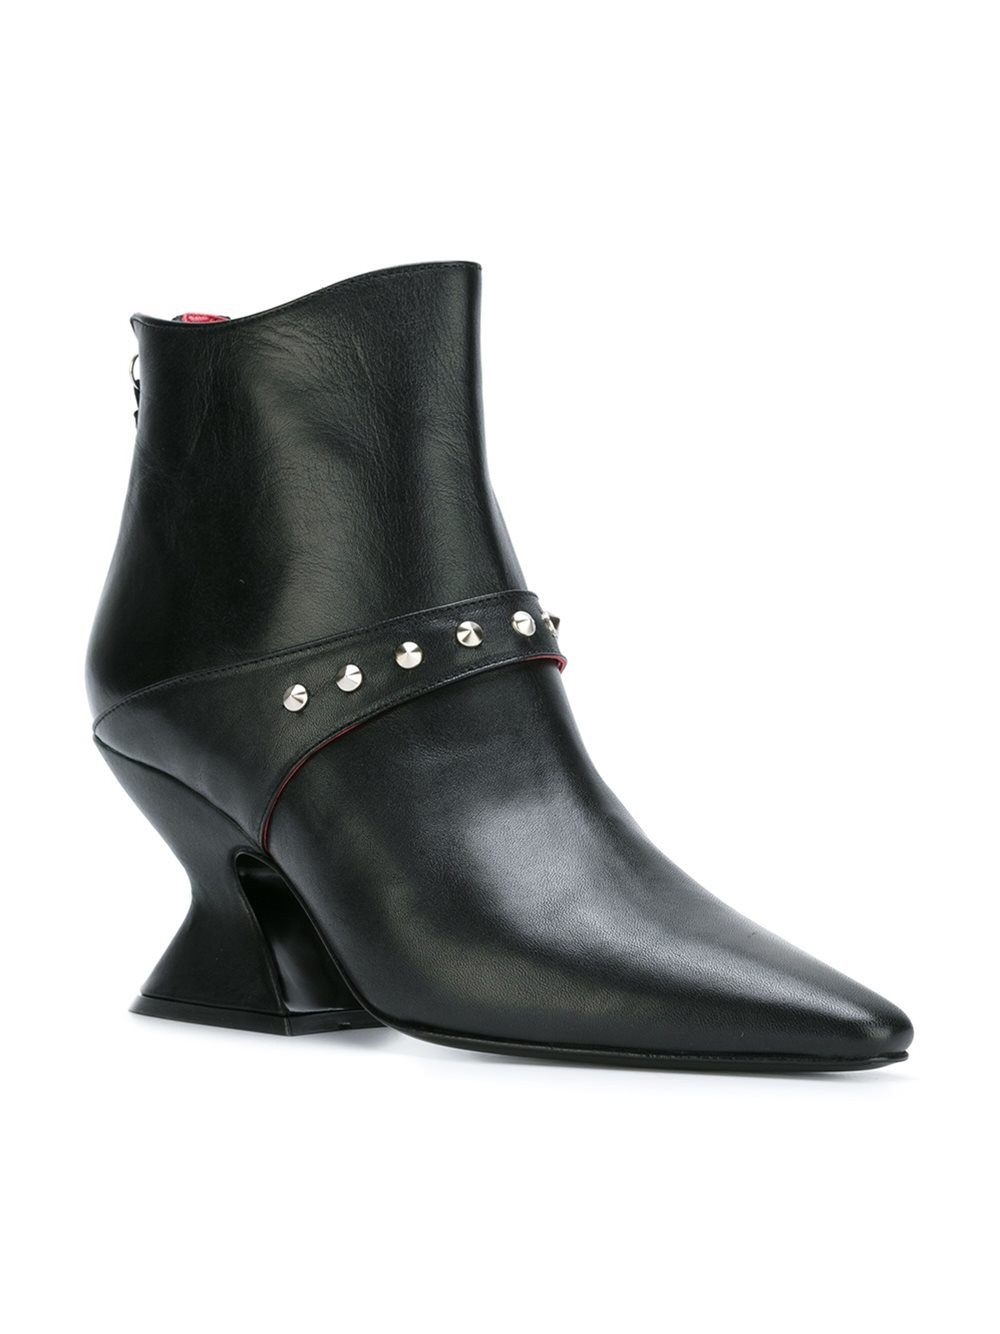 Dorateymur Leather 'radio' Ankle Boots in Black